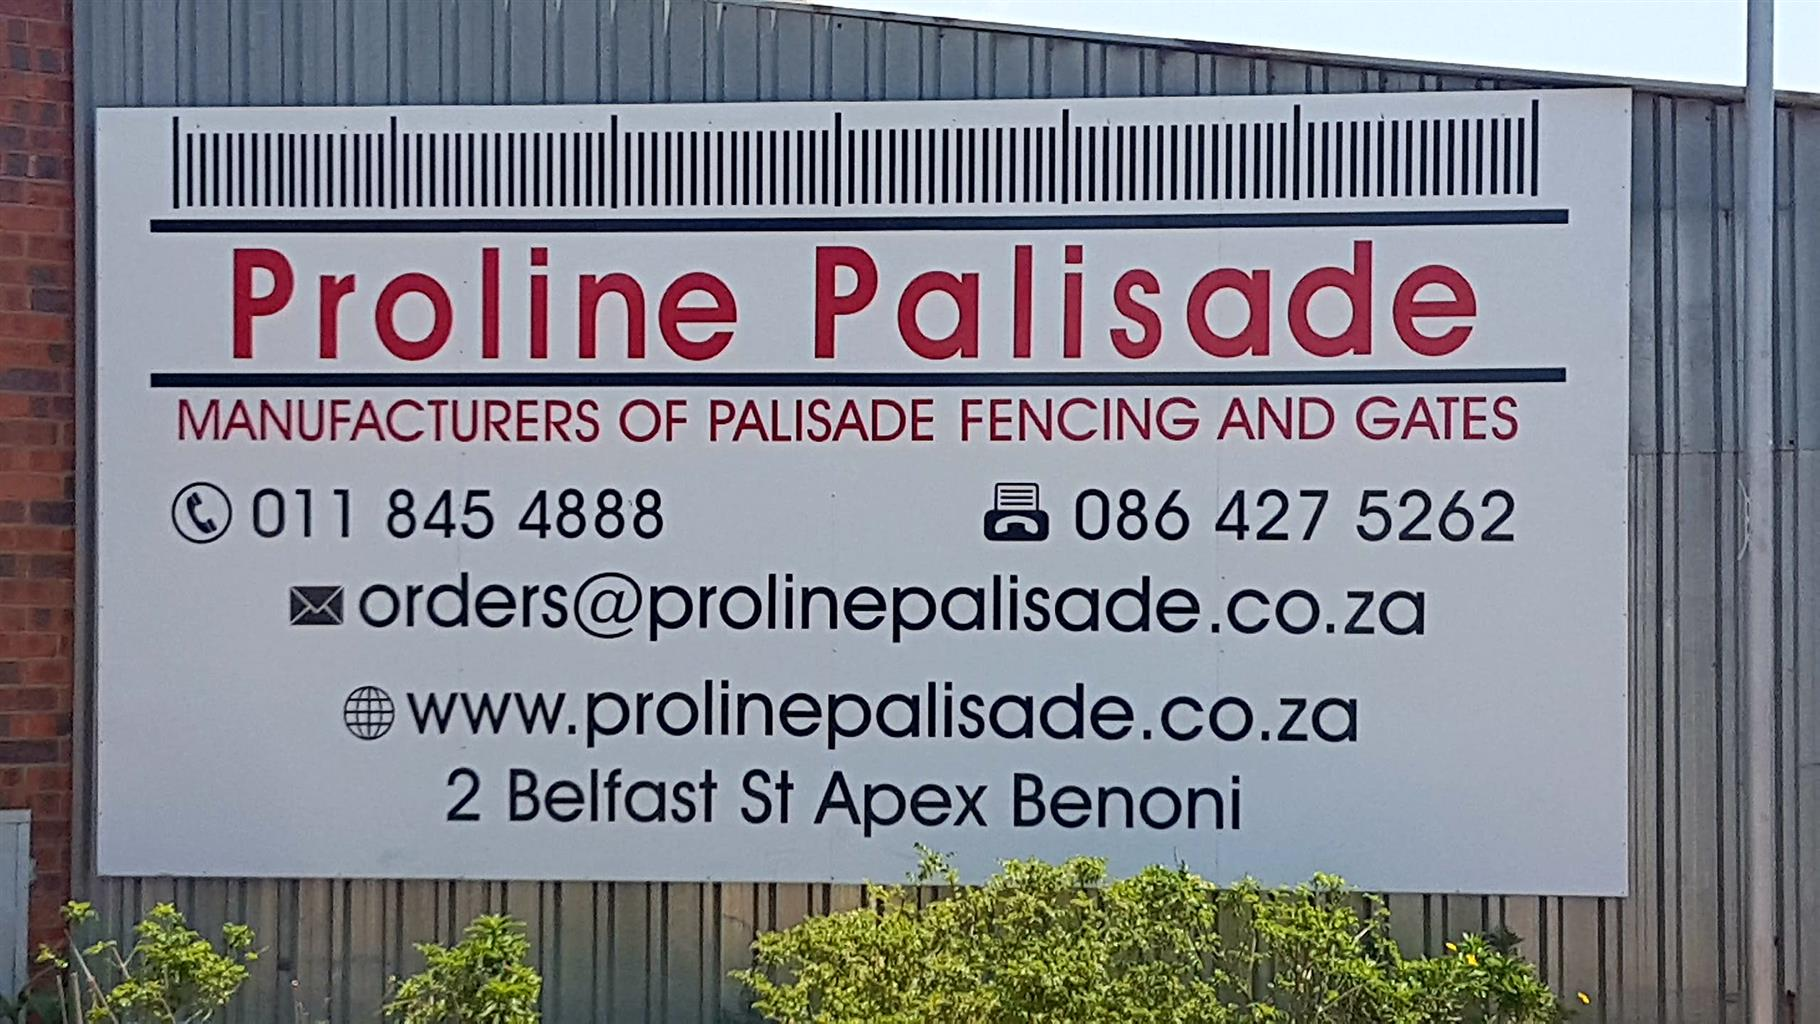 Find Proline Palisade CC's adverts listed on Junk Mail